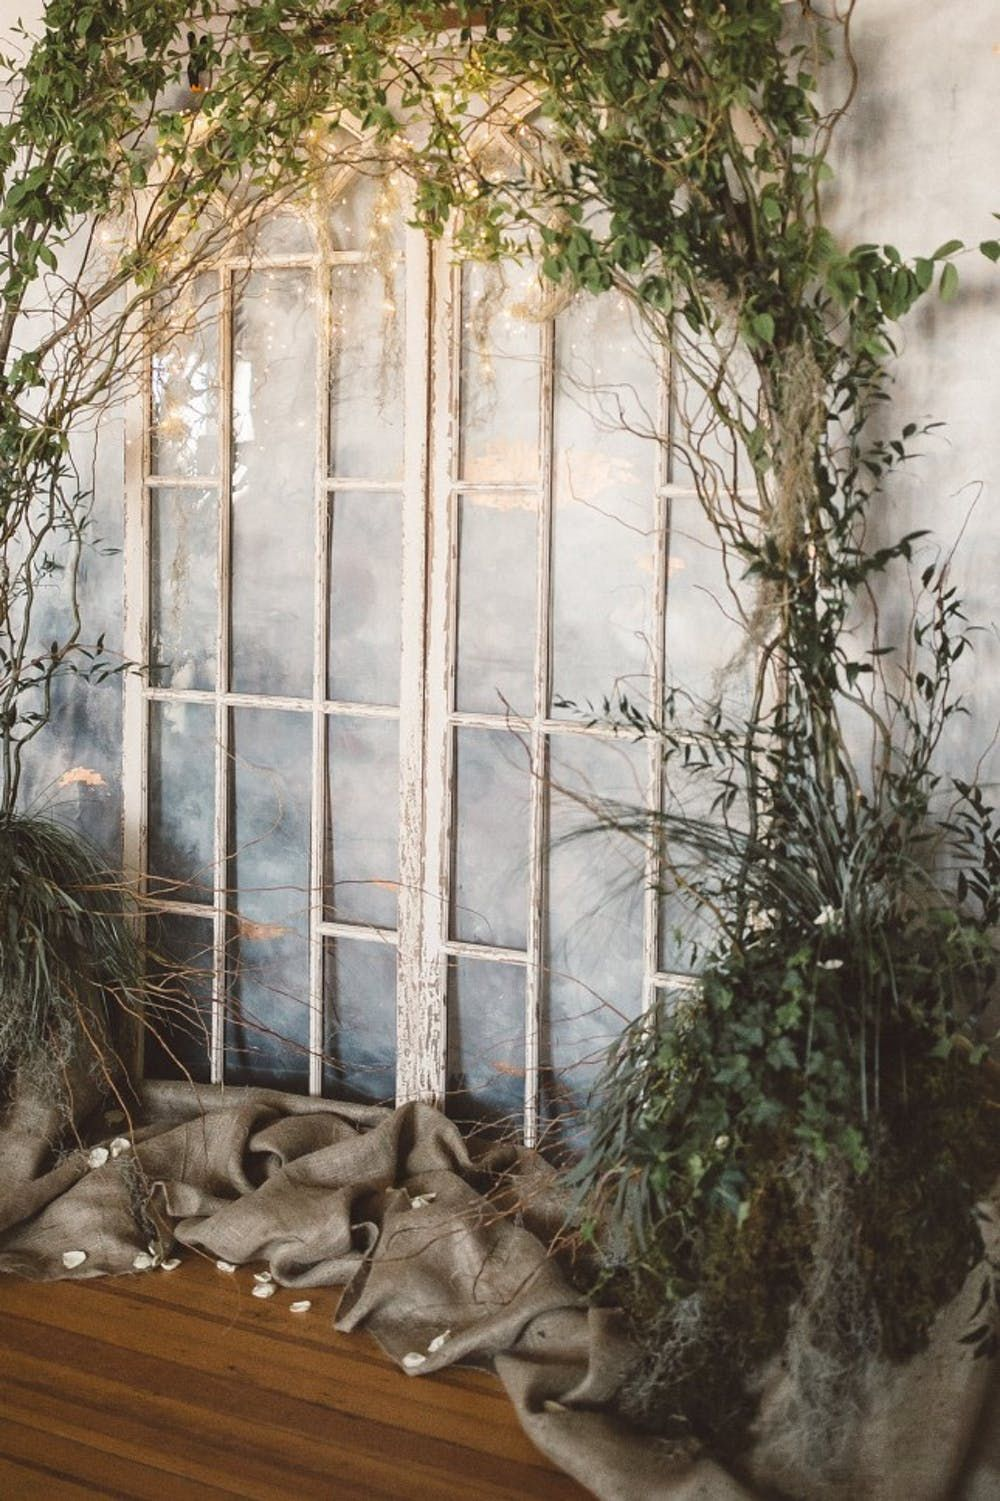 Get Ready to Swoon Over This Ethereal Garden-Inspired Wedding Shoot